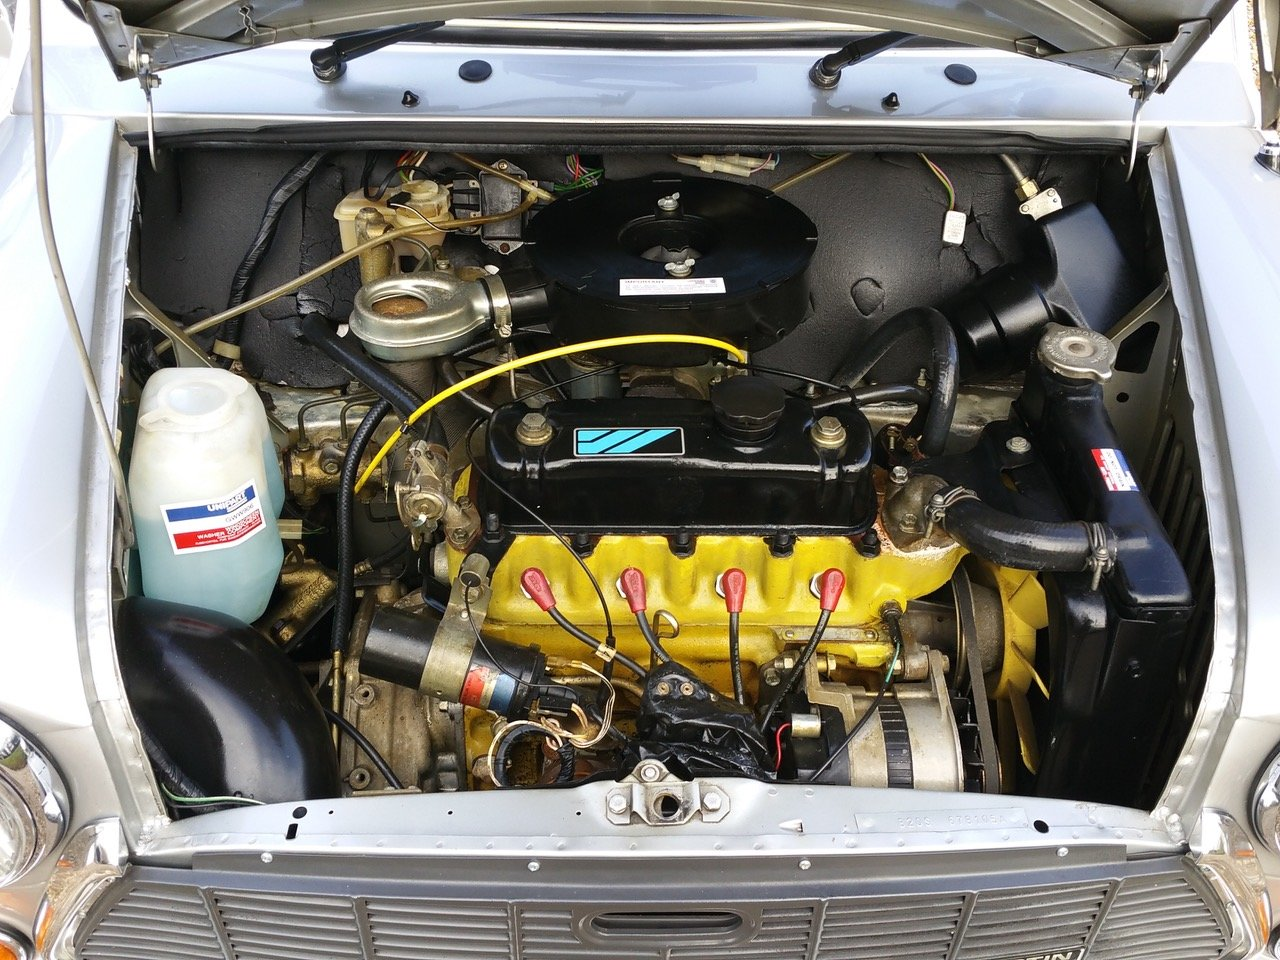 1992 'Time Warp' Mini Ritz On Just 3820 Miles From New SOLD (picture 8 of 10)